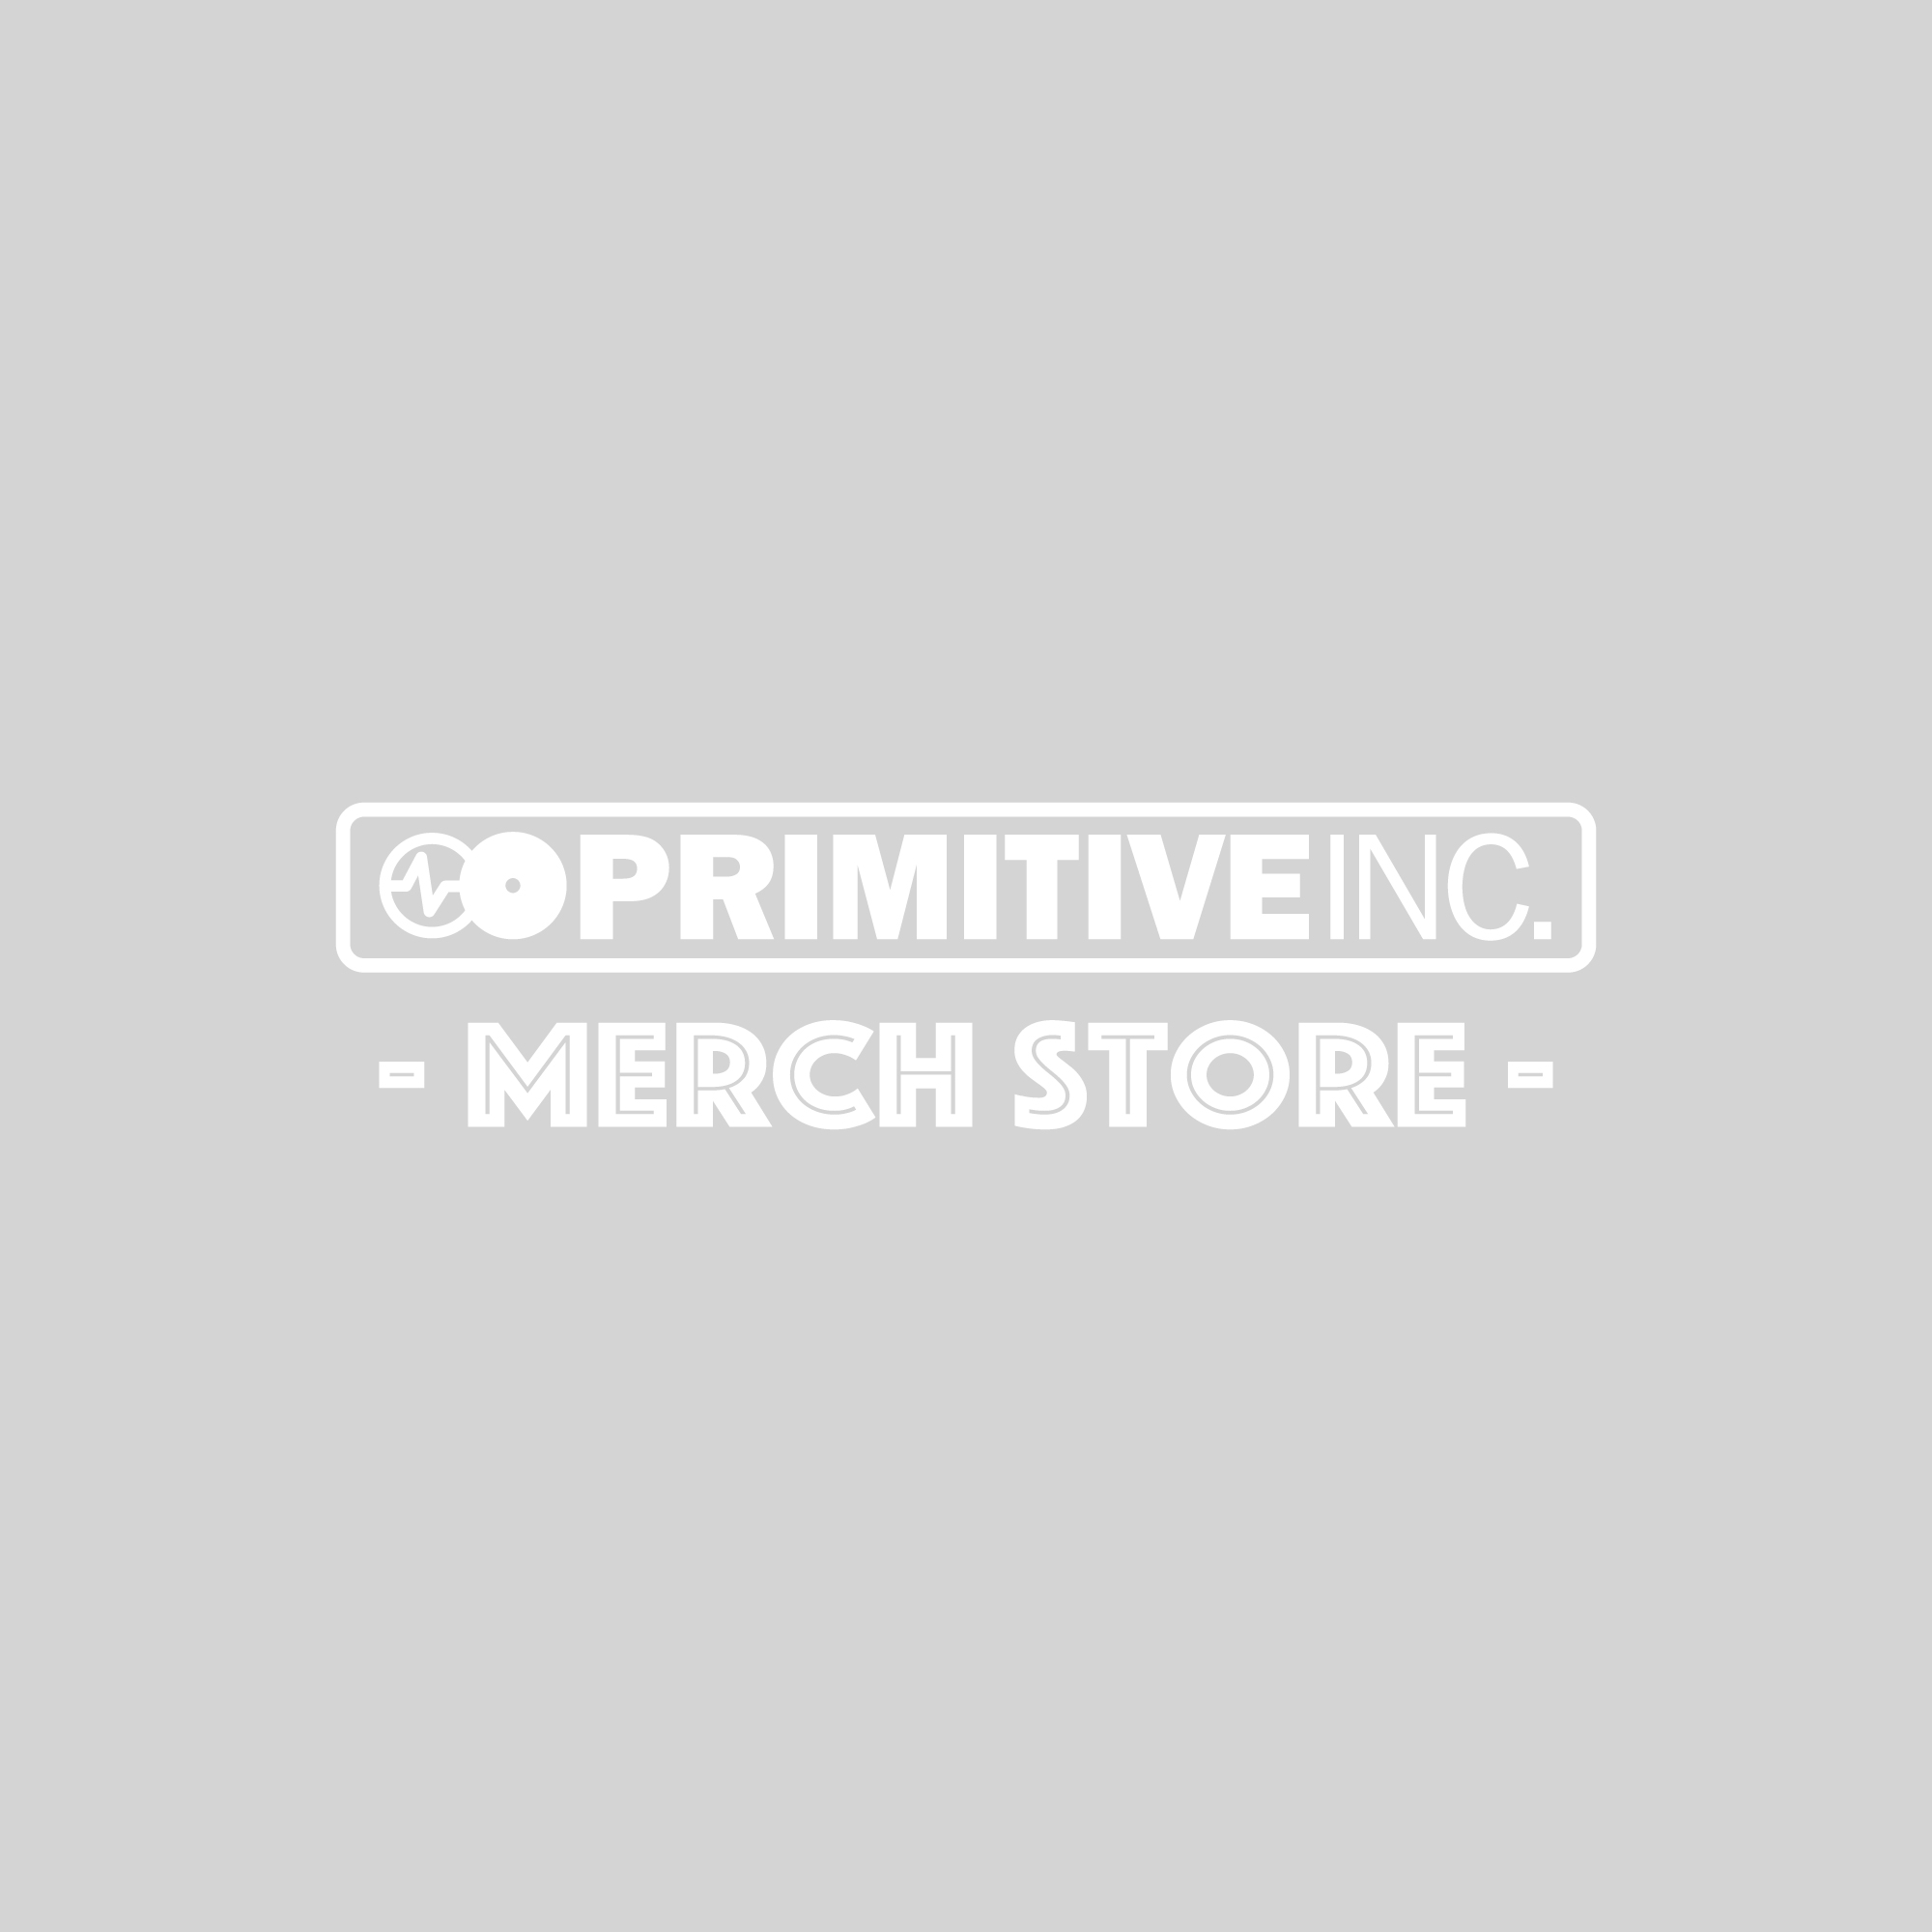 PRIMITIVE INC. MERCH STORE